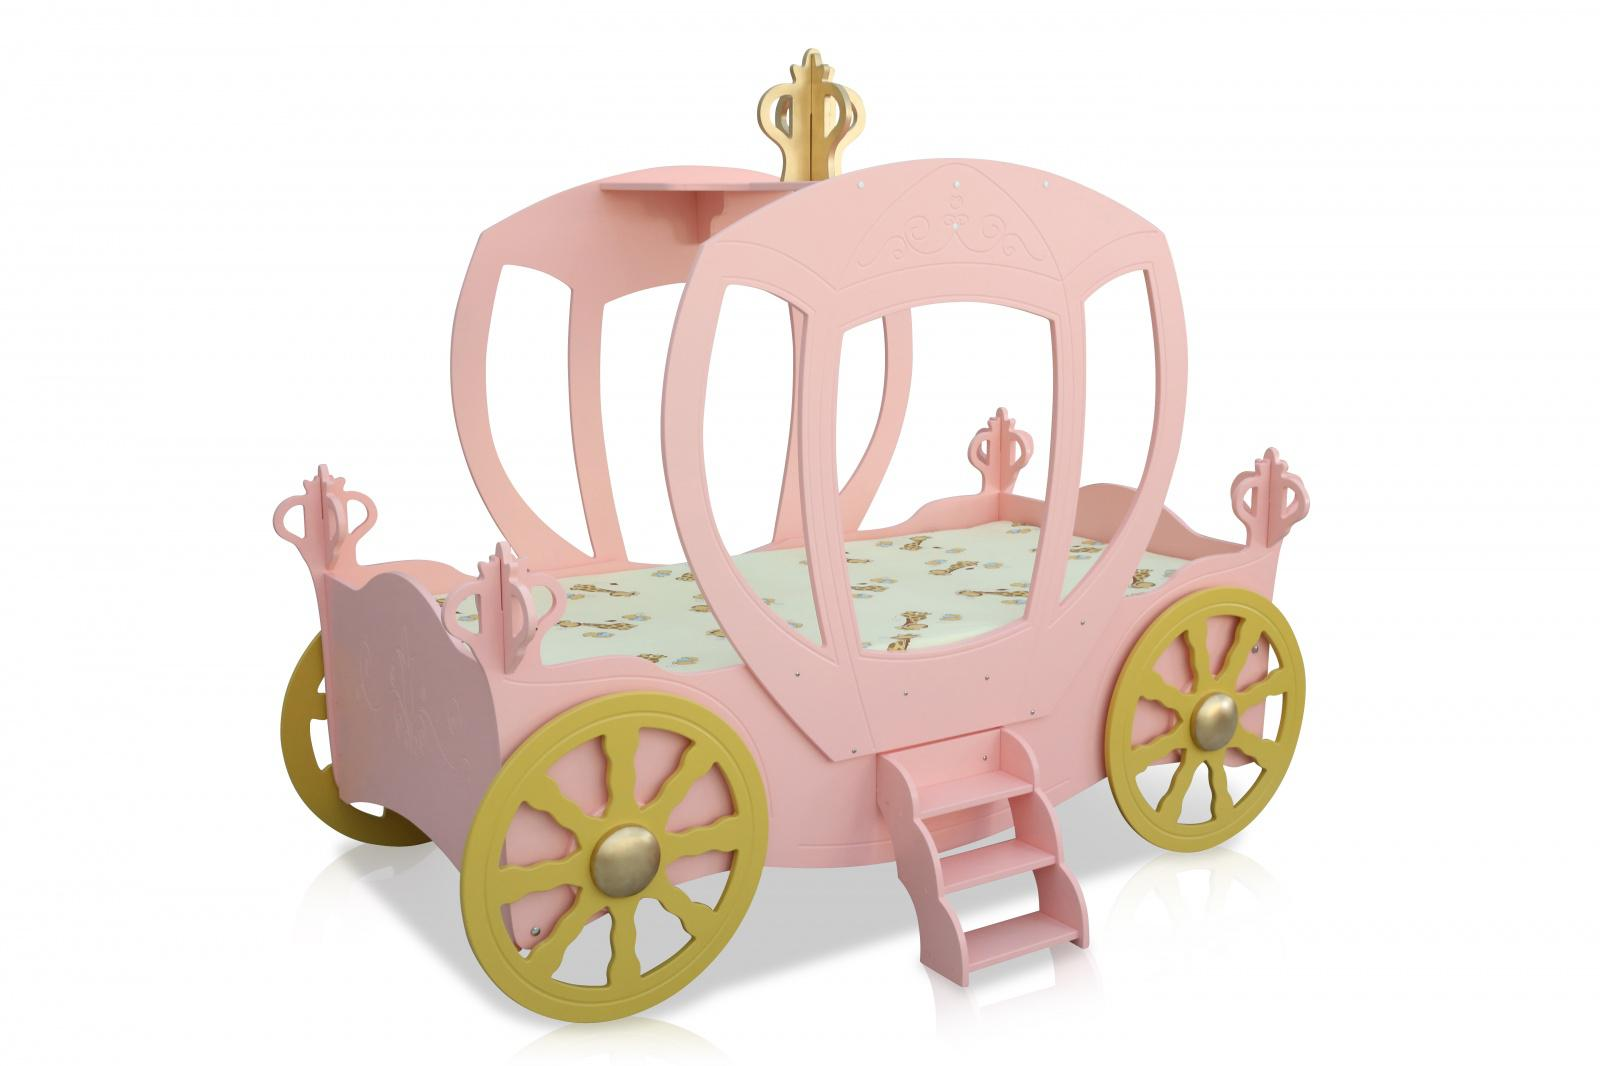 kinderbett prinzessin kutsche rosa inkl matratze kaufen bei m bel lux. Black Bedroom Furniture Sets. Home Design Ideas